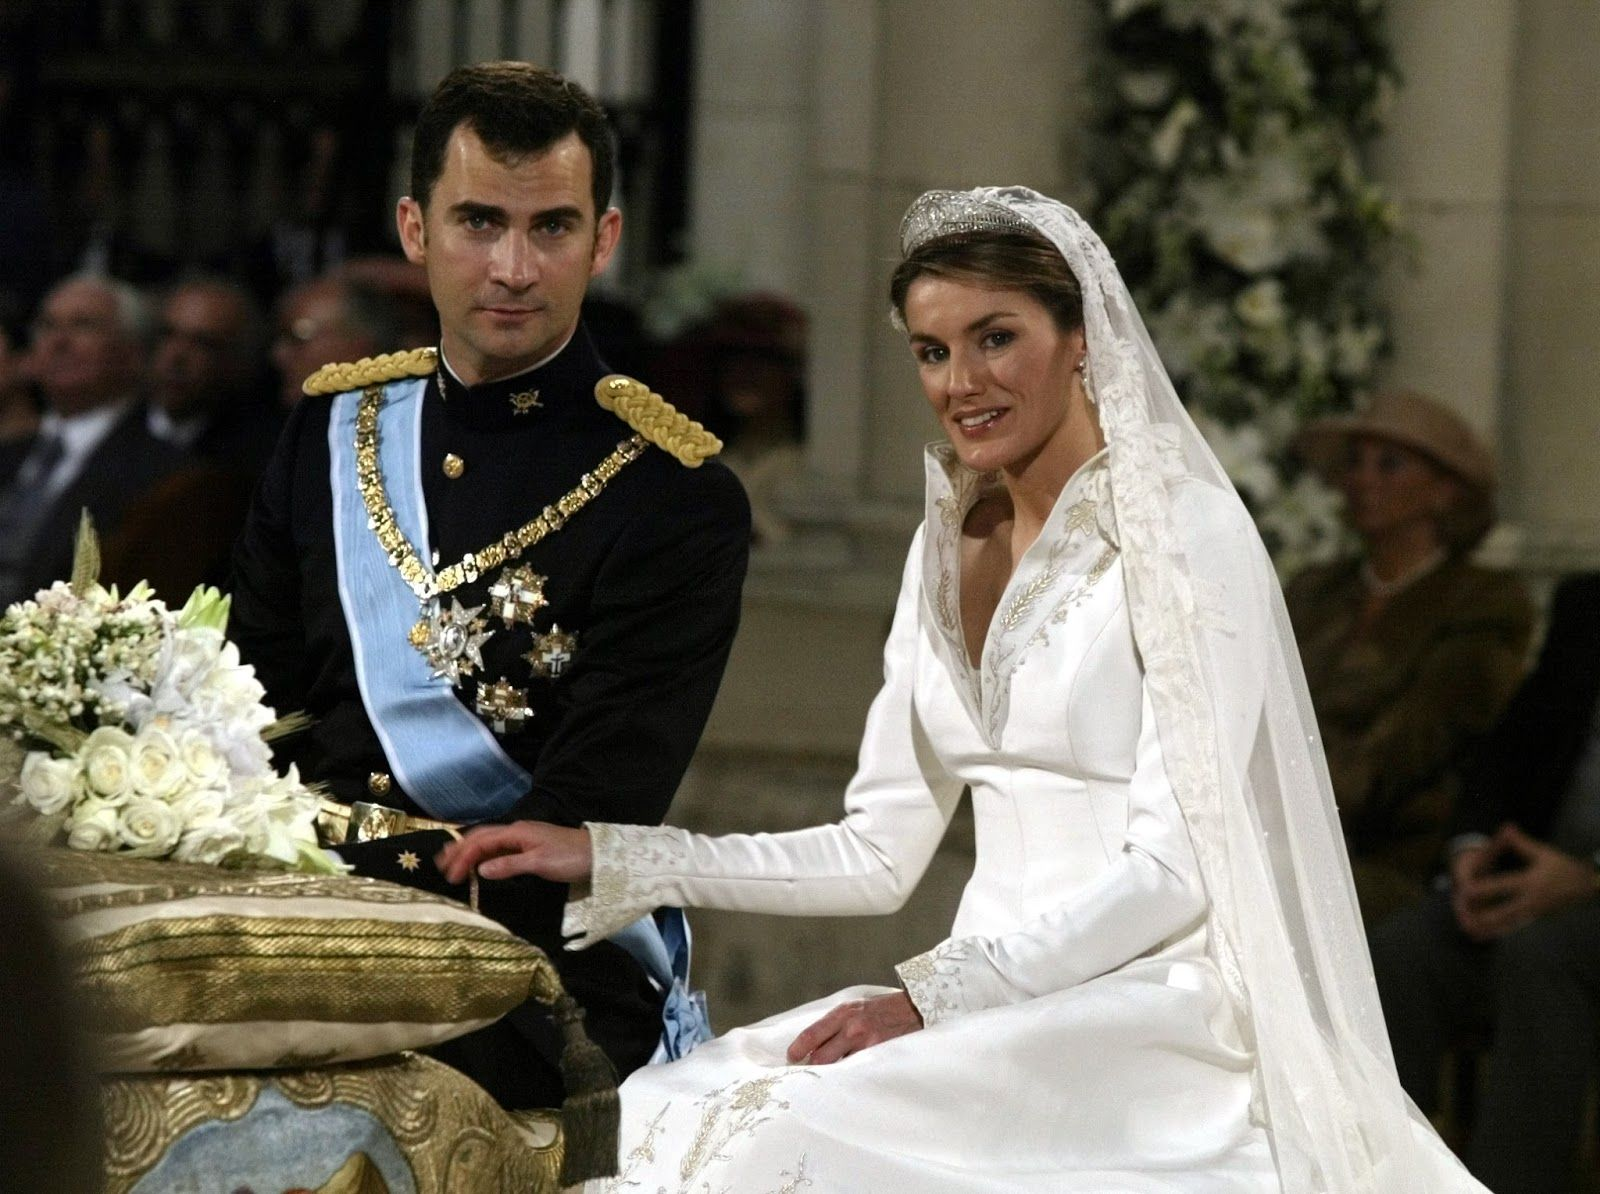 royal Wedding spain  King Felipe VI and Queen Letizia of Spain on